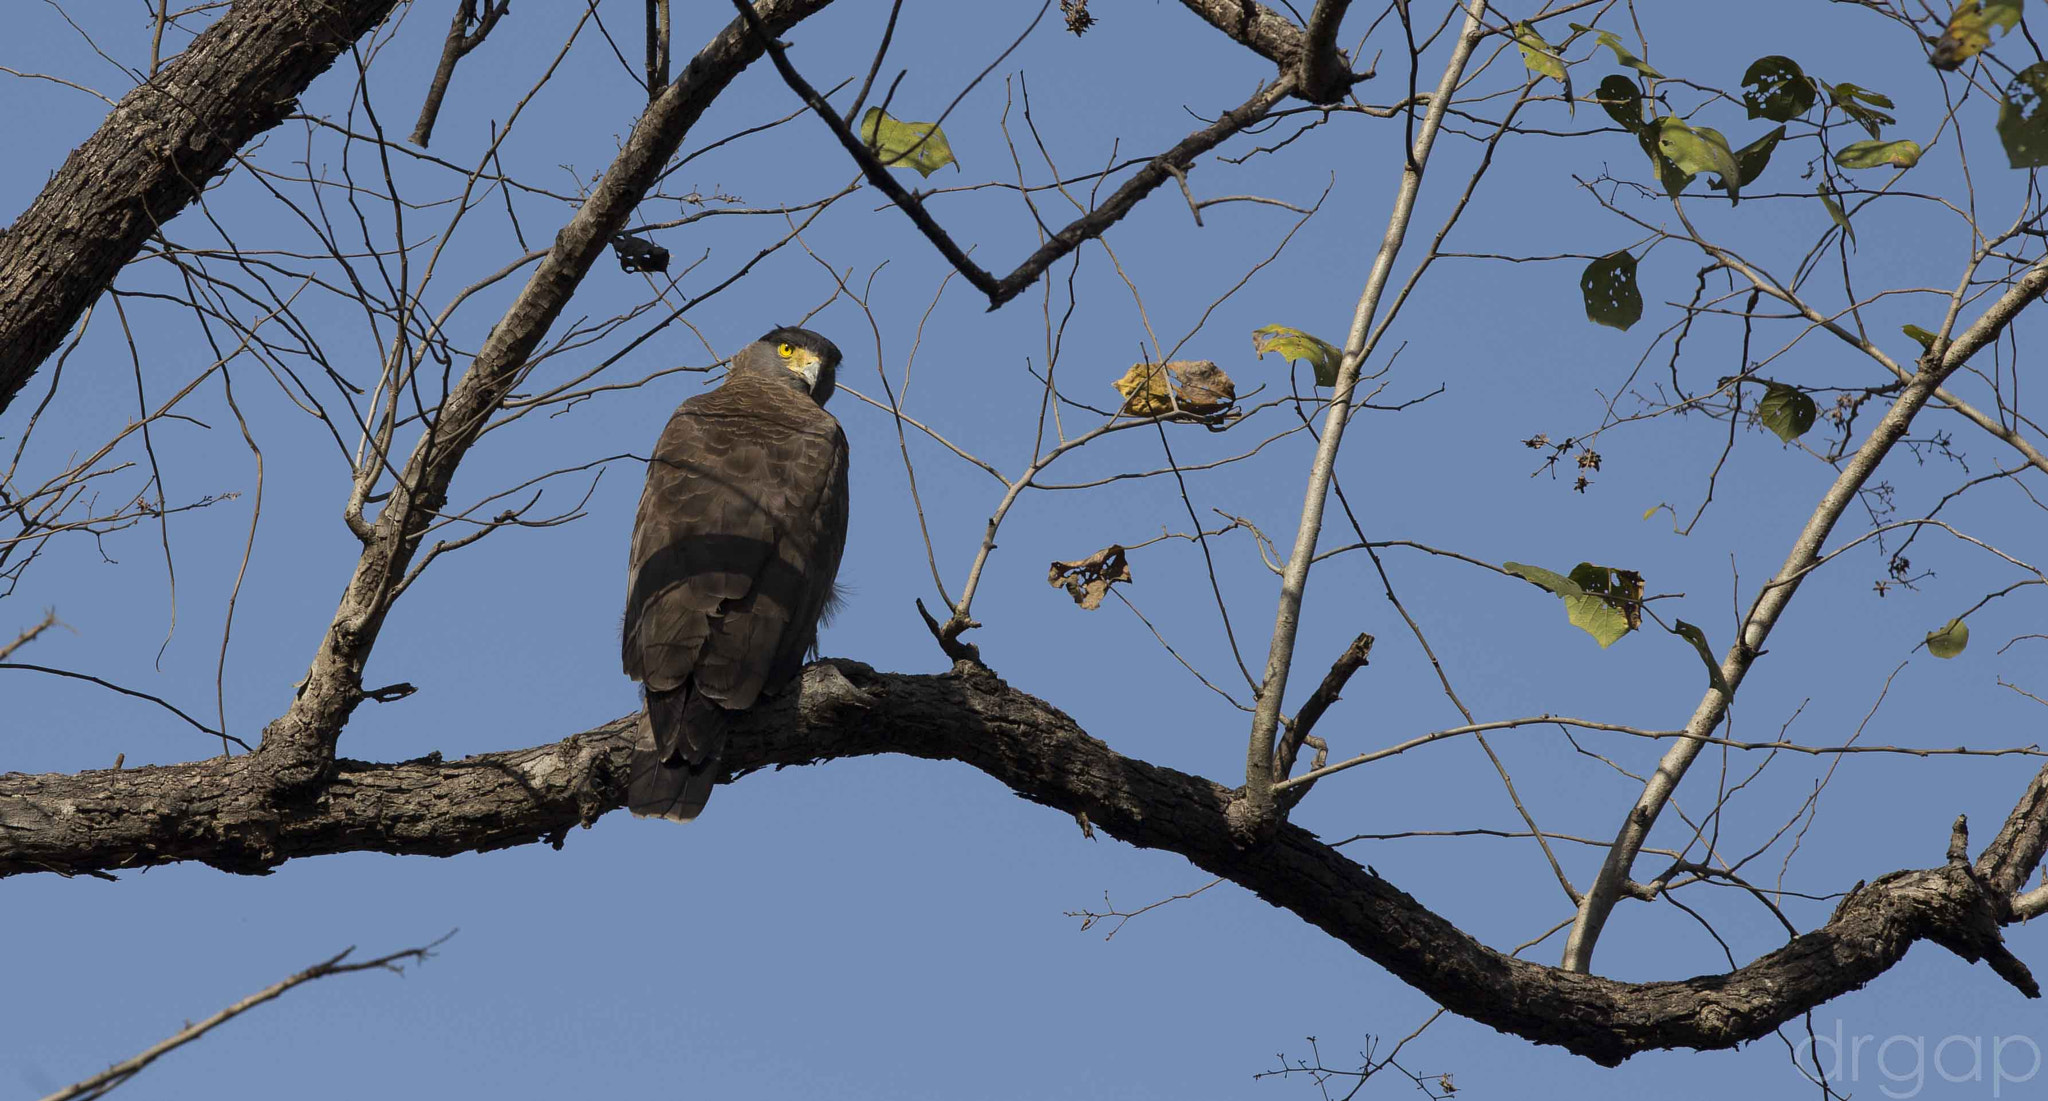 Photograph Serpent Crested Eagle by Gunjan  Puri on 500px